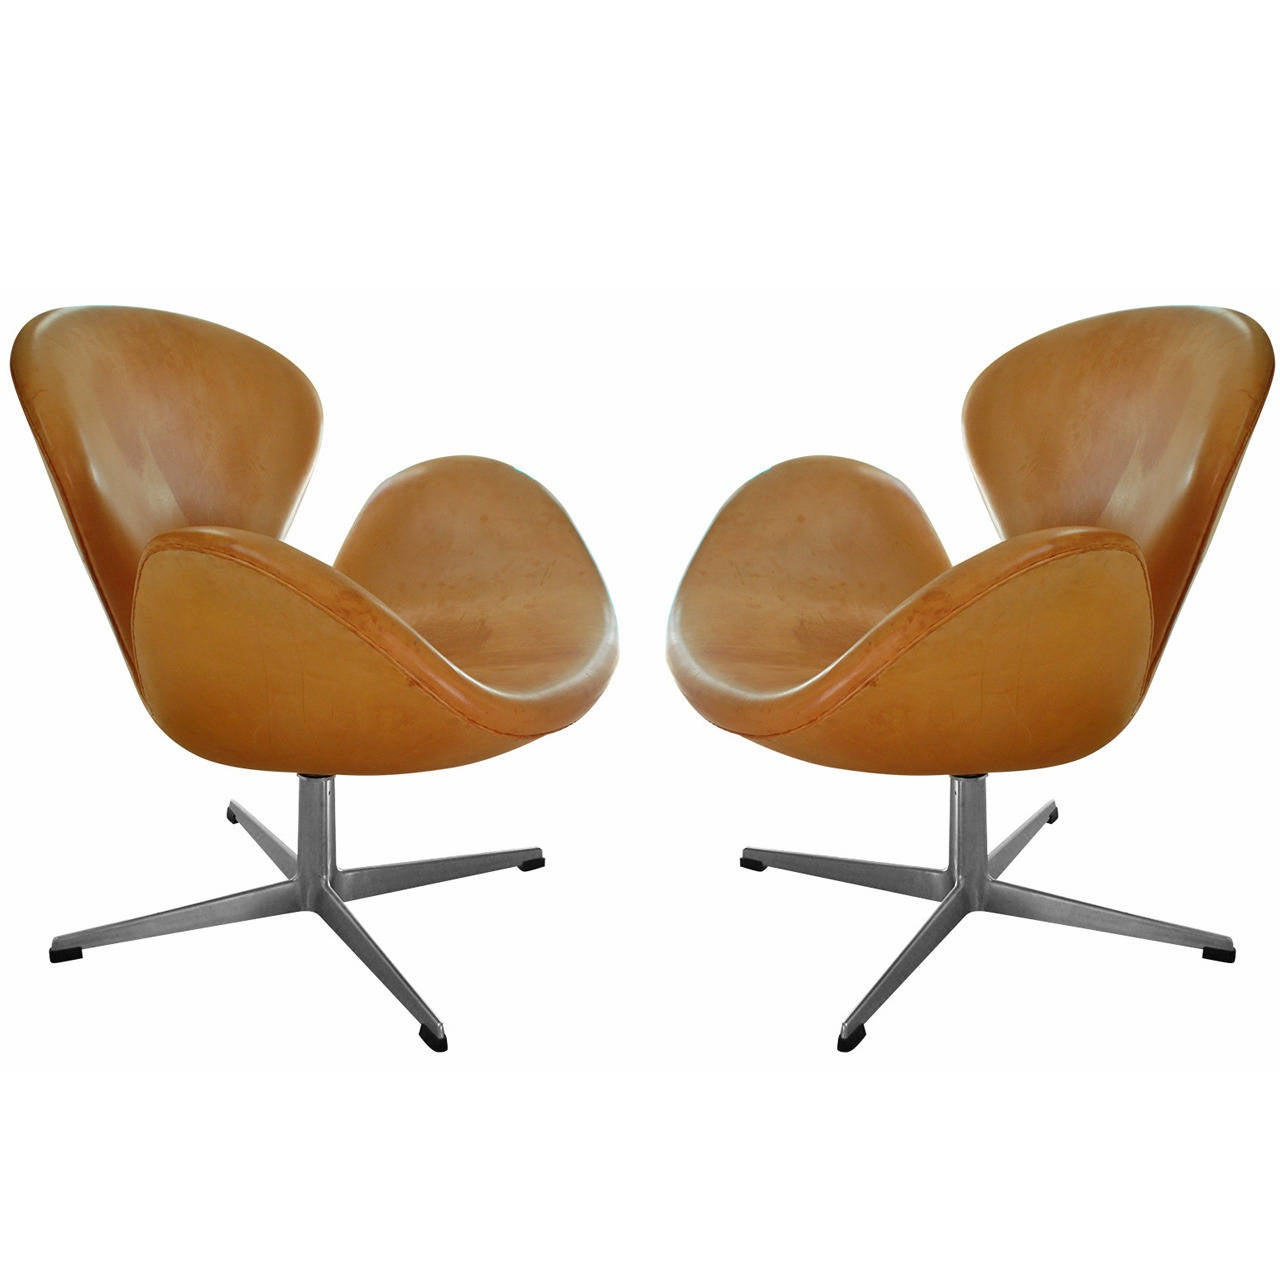 rare natural leather early swan chairs by arne jacobsen circa 1963 for sale at 1stdibs. Black Bedroom Furniture Sets. Home Design Ideas